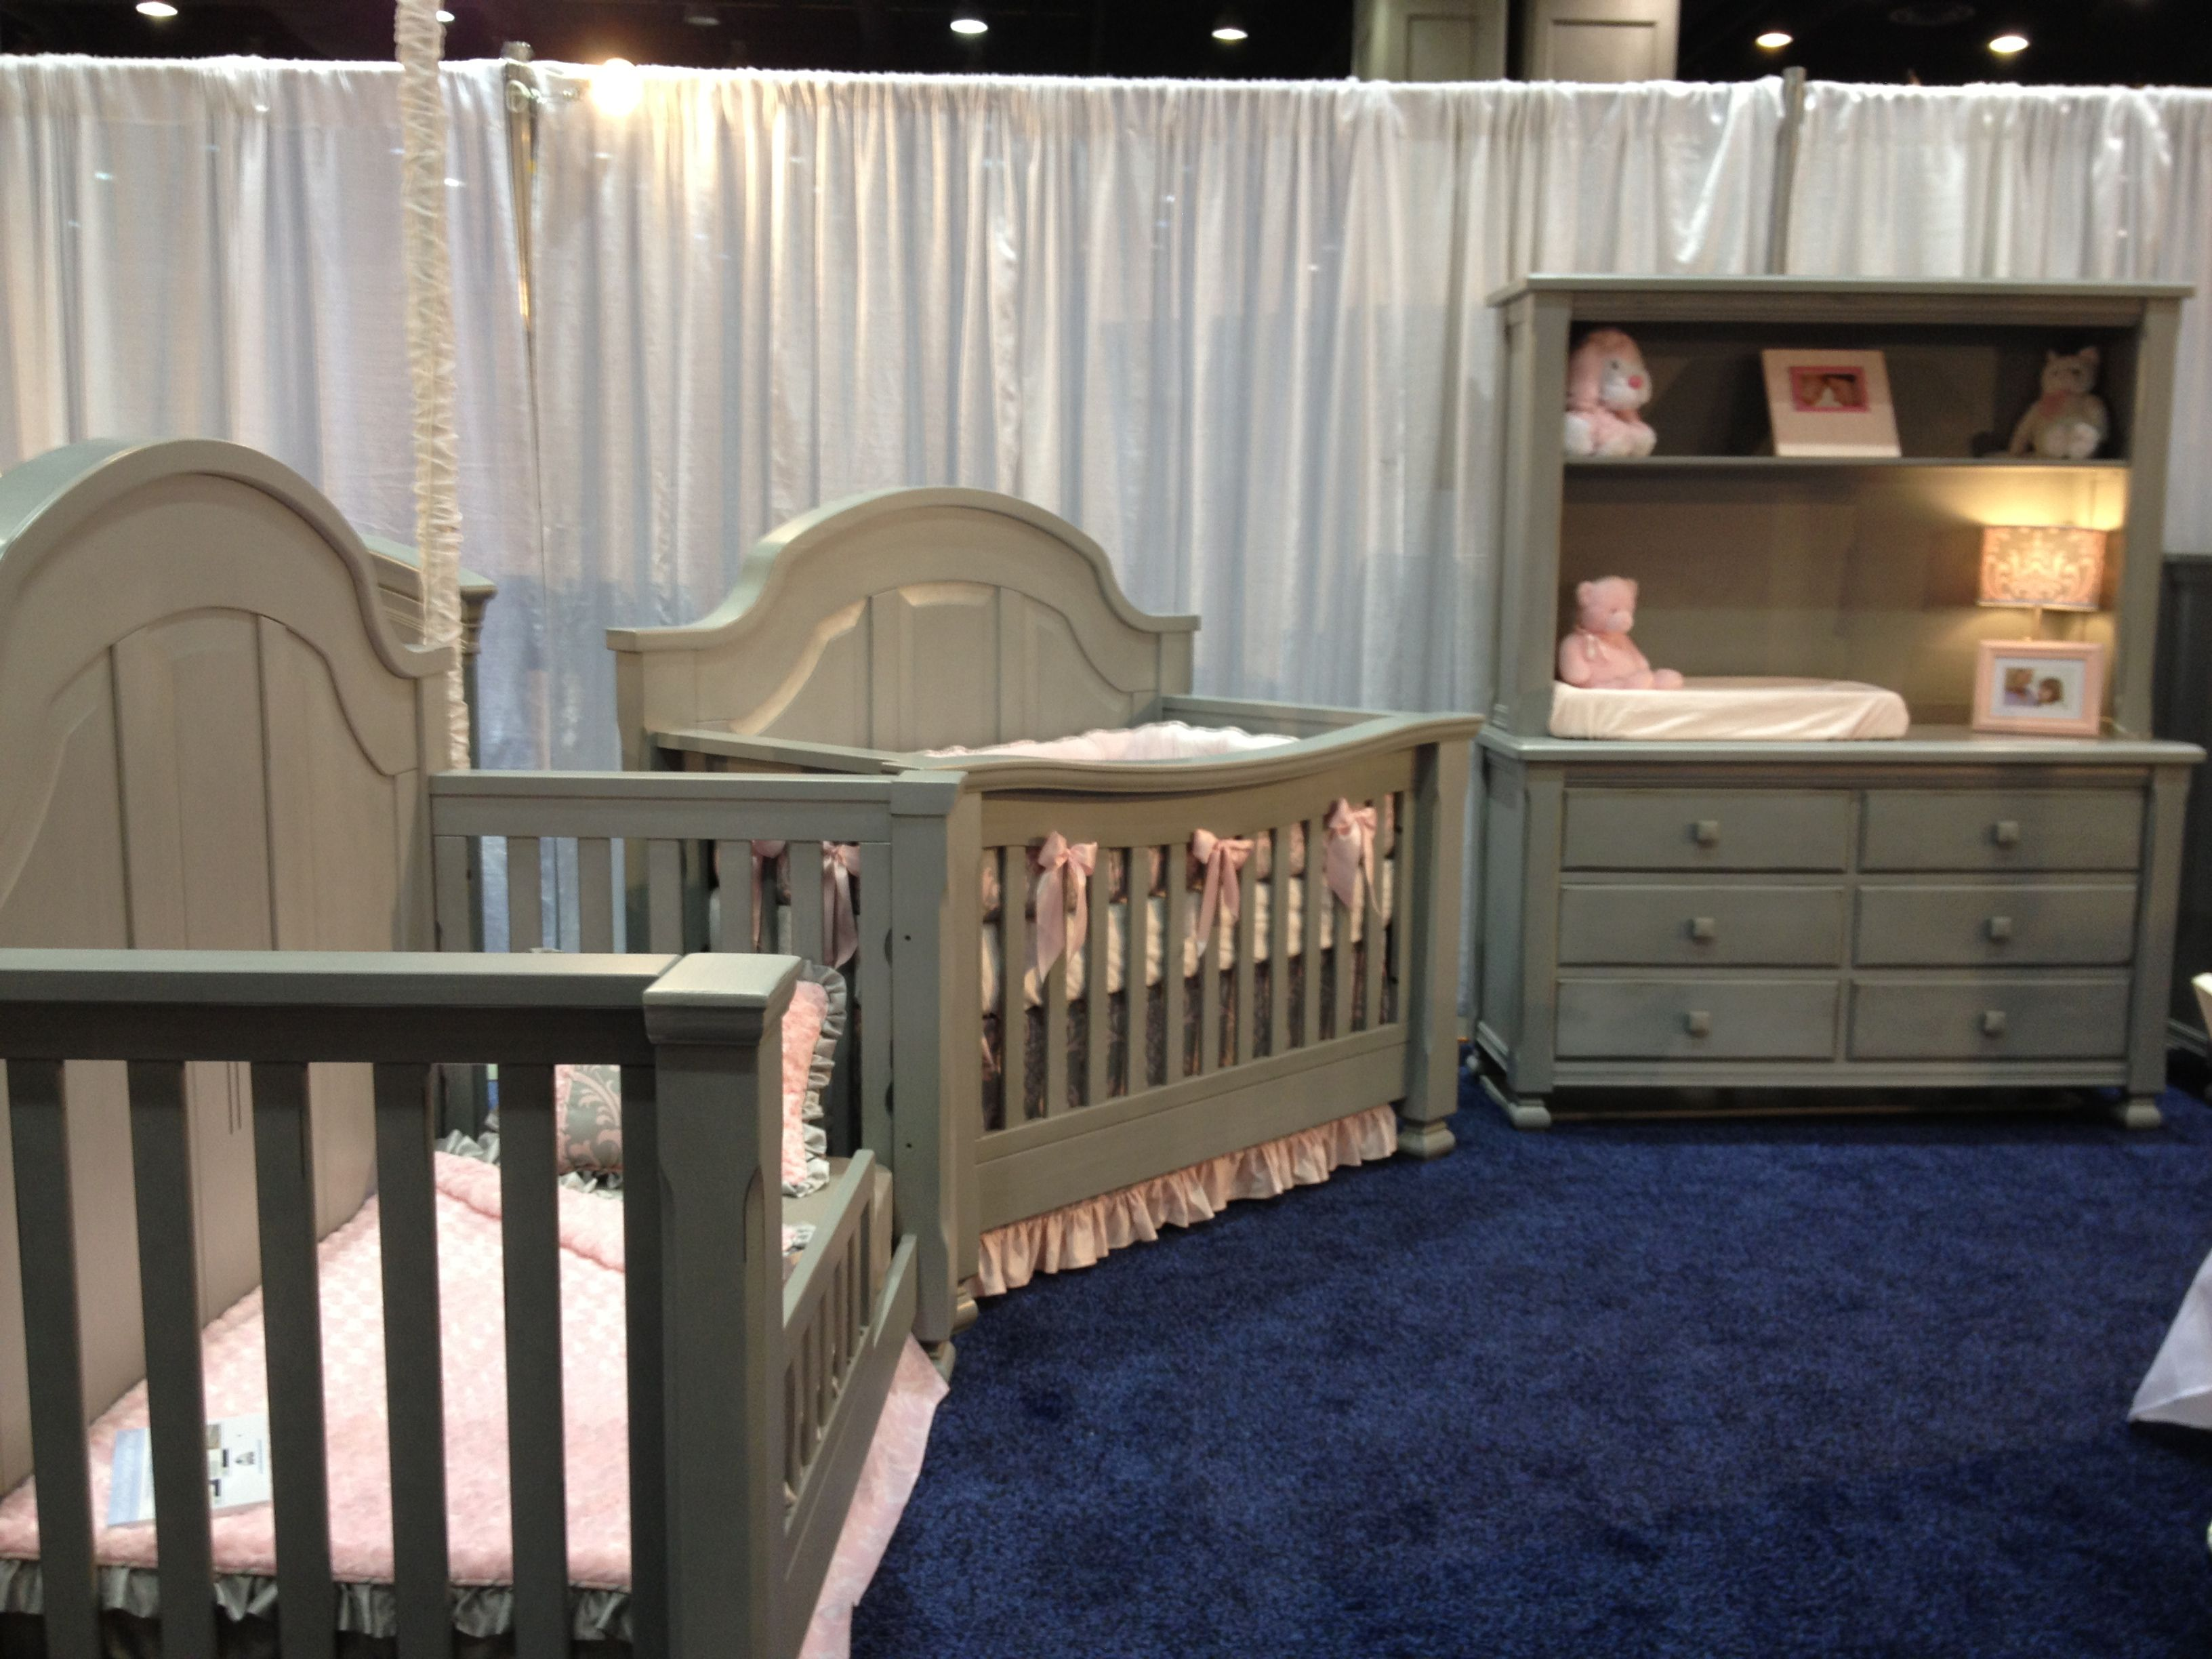 assembly cod crib silo customercare baby instructions sgy in side dream cribs convertible cape